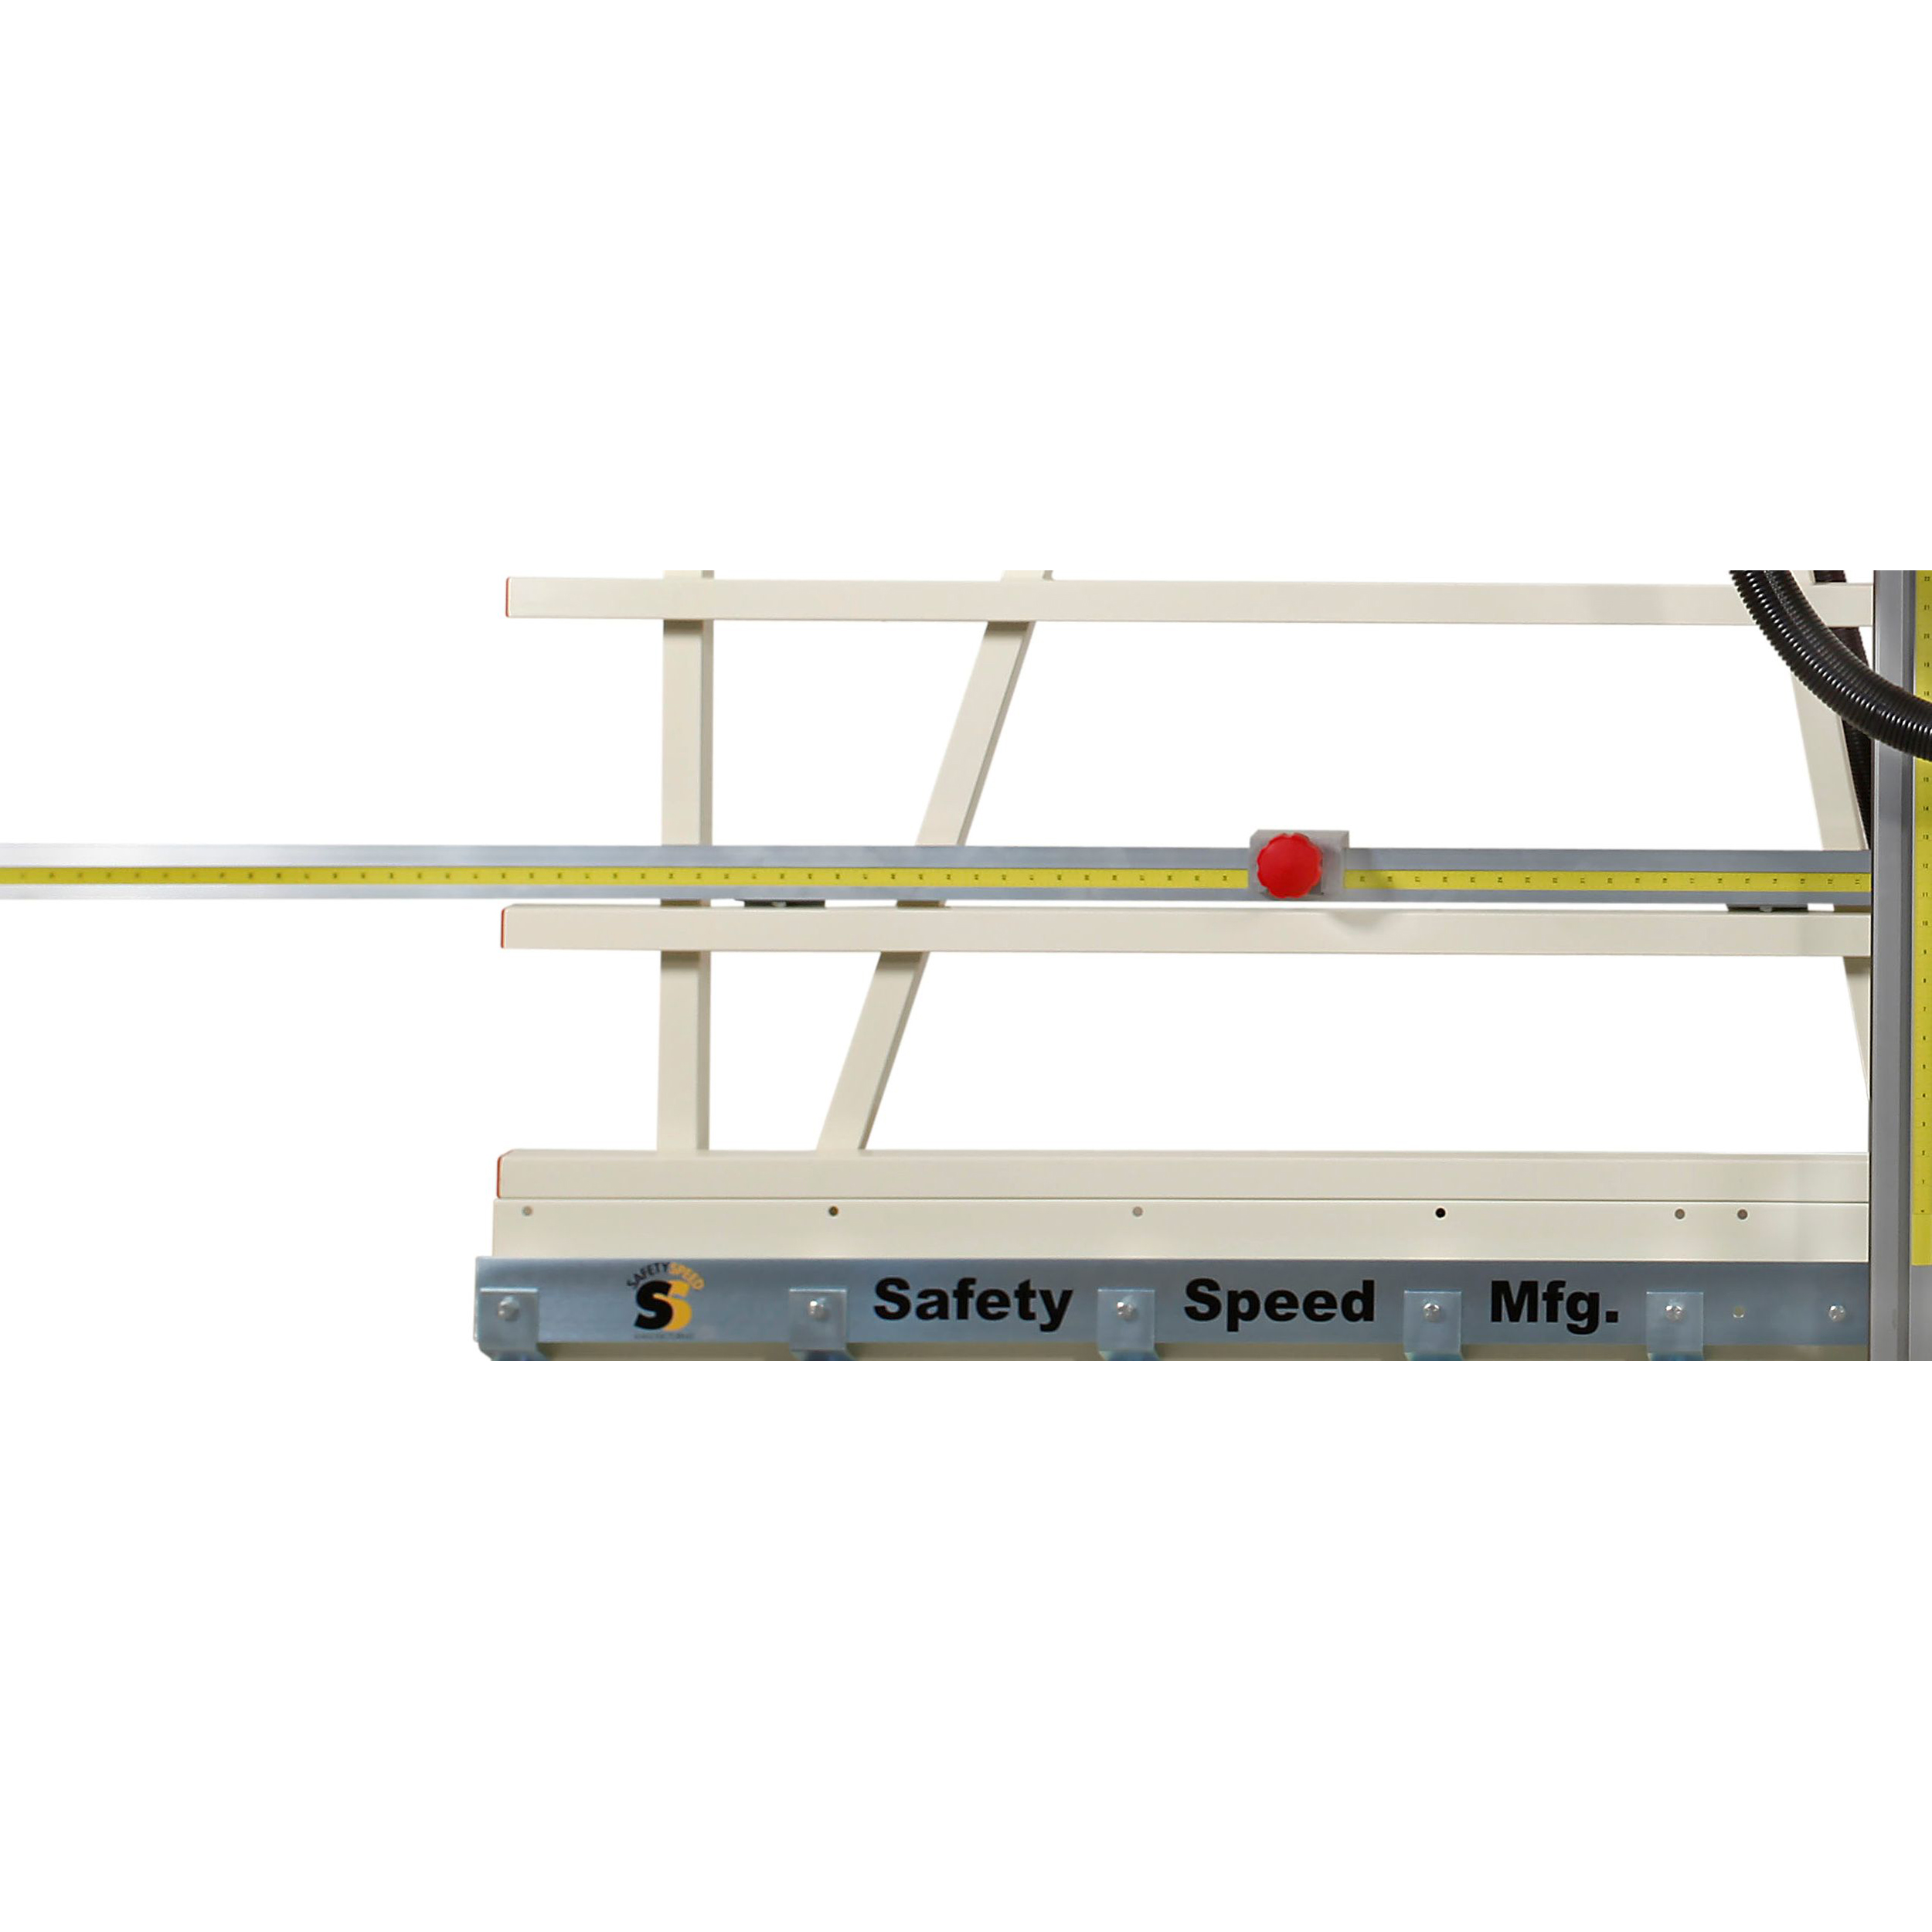 Quick Stop for Safety Speed H4, H5, H6, 6400, 6800, SR5, SR5U, 3400 Vertical Panel Saws/Routers